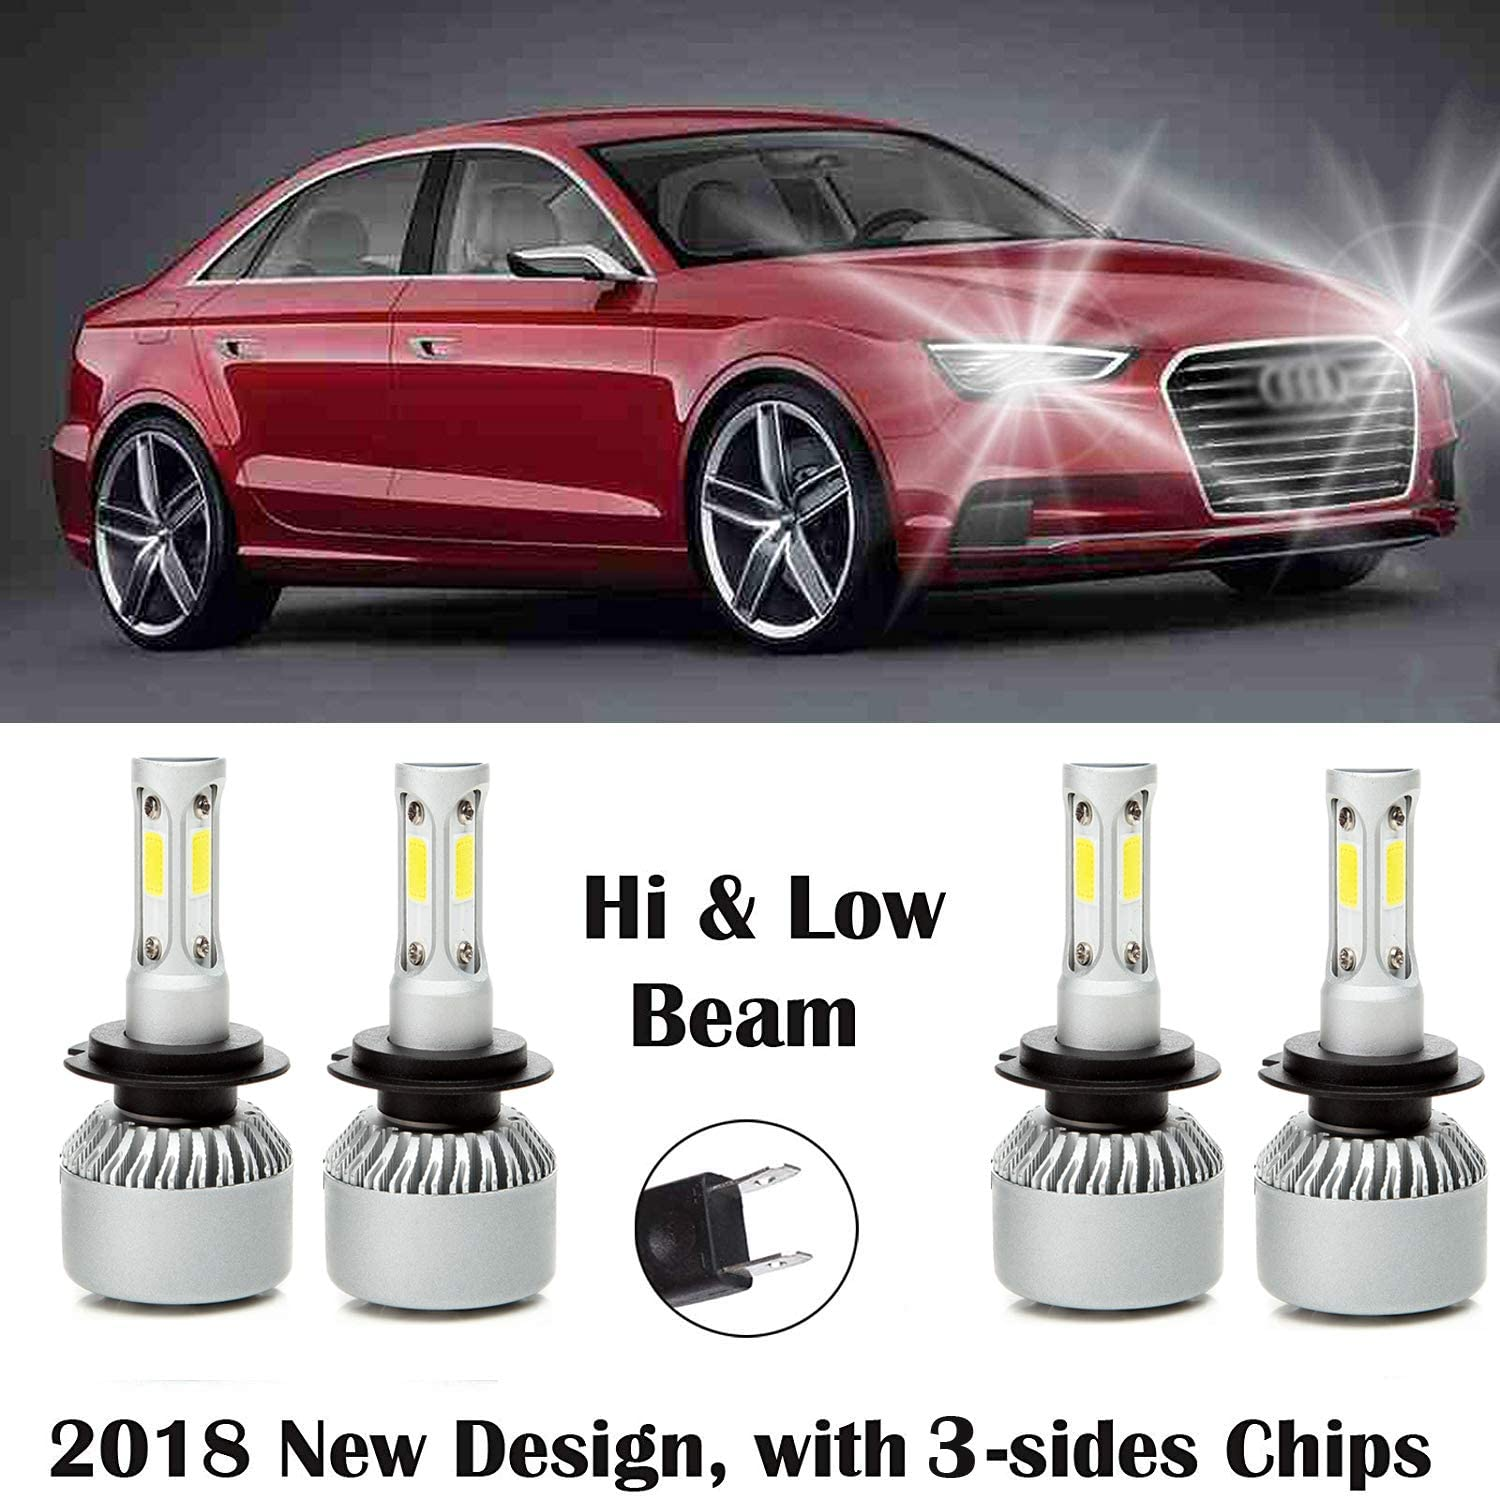 6000K 32000LM Super Bright White Light Autobaba 4Pcs H7 LED Headlights Bulbs High /& Low Beam Combo Kit for Audi A3 2009-2013 Plug and Play 2 Year Warranty